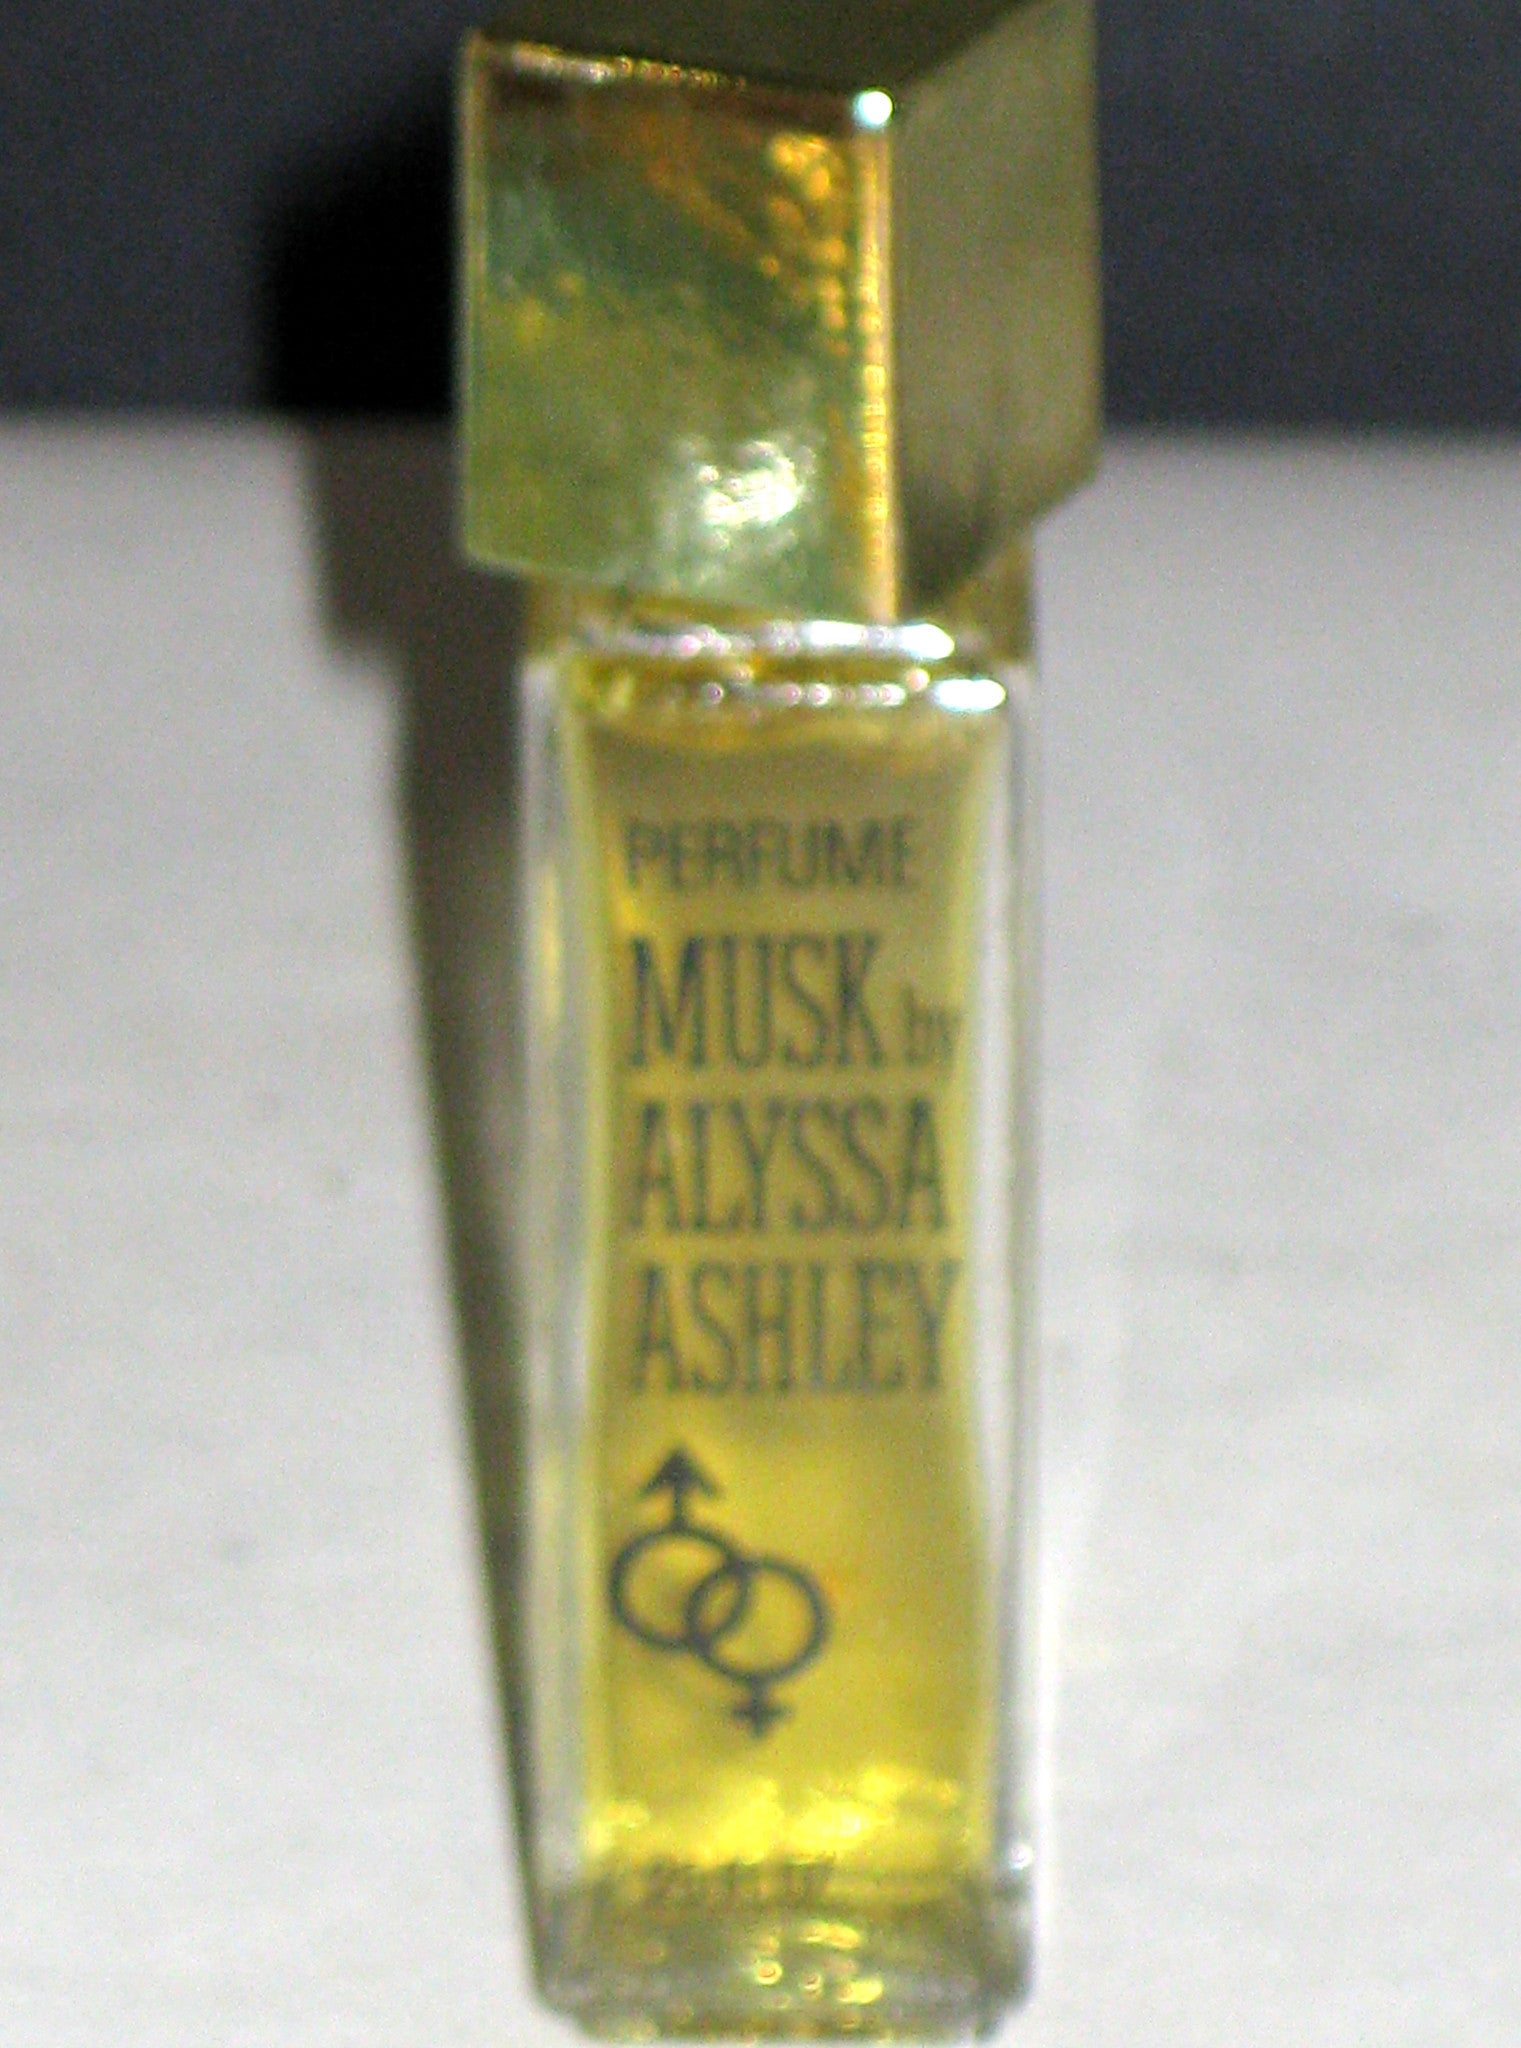 Alyssa Ashley Musk Perfume Mini